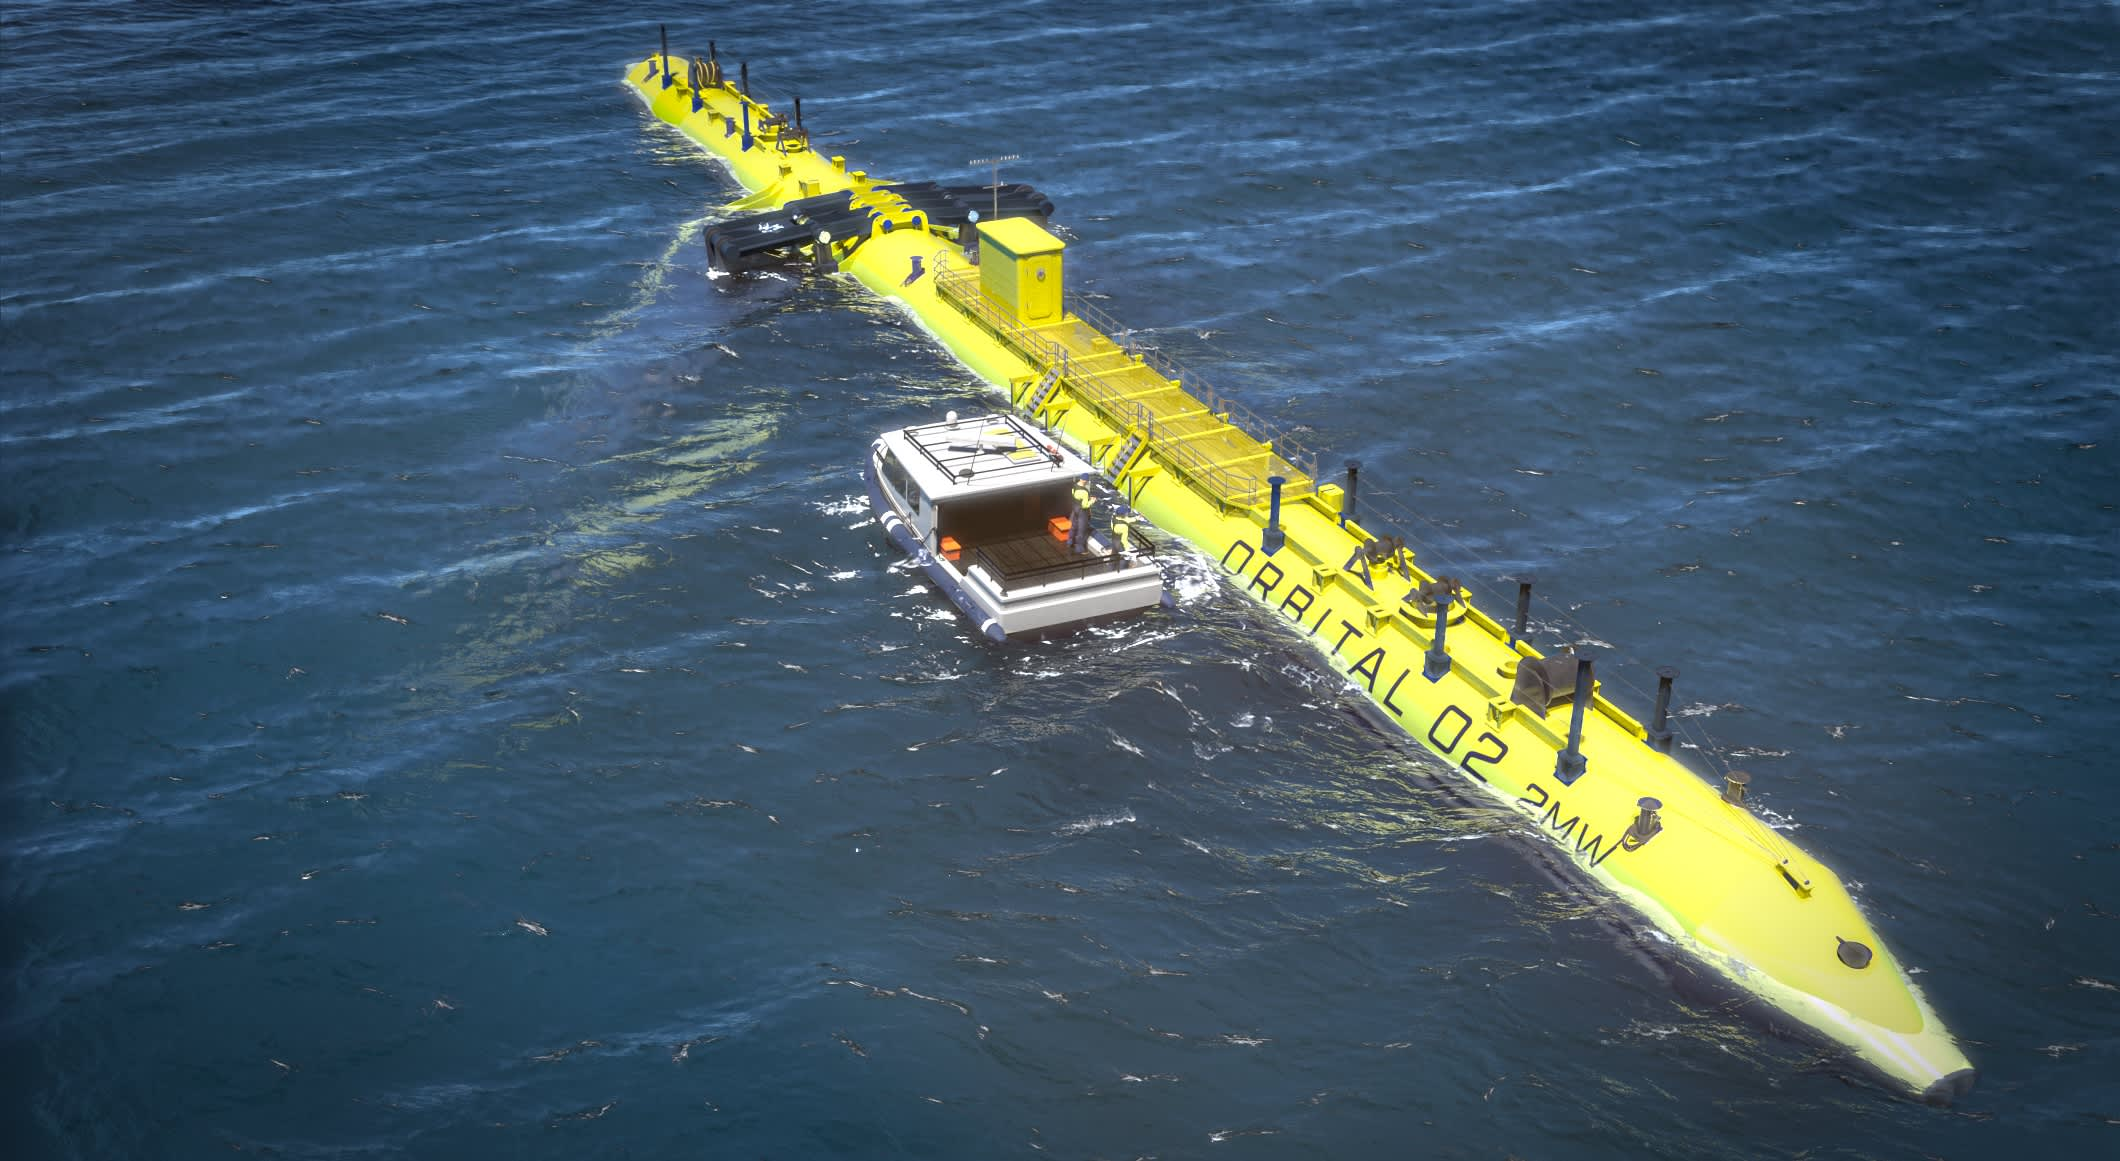 Blades contract signed as work continues on 'world's most powerful tidal turbine'